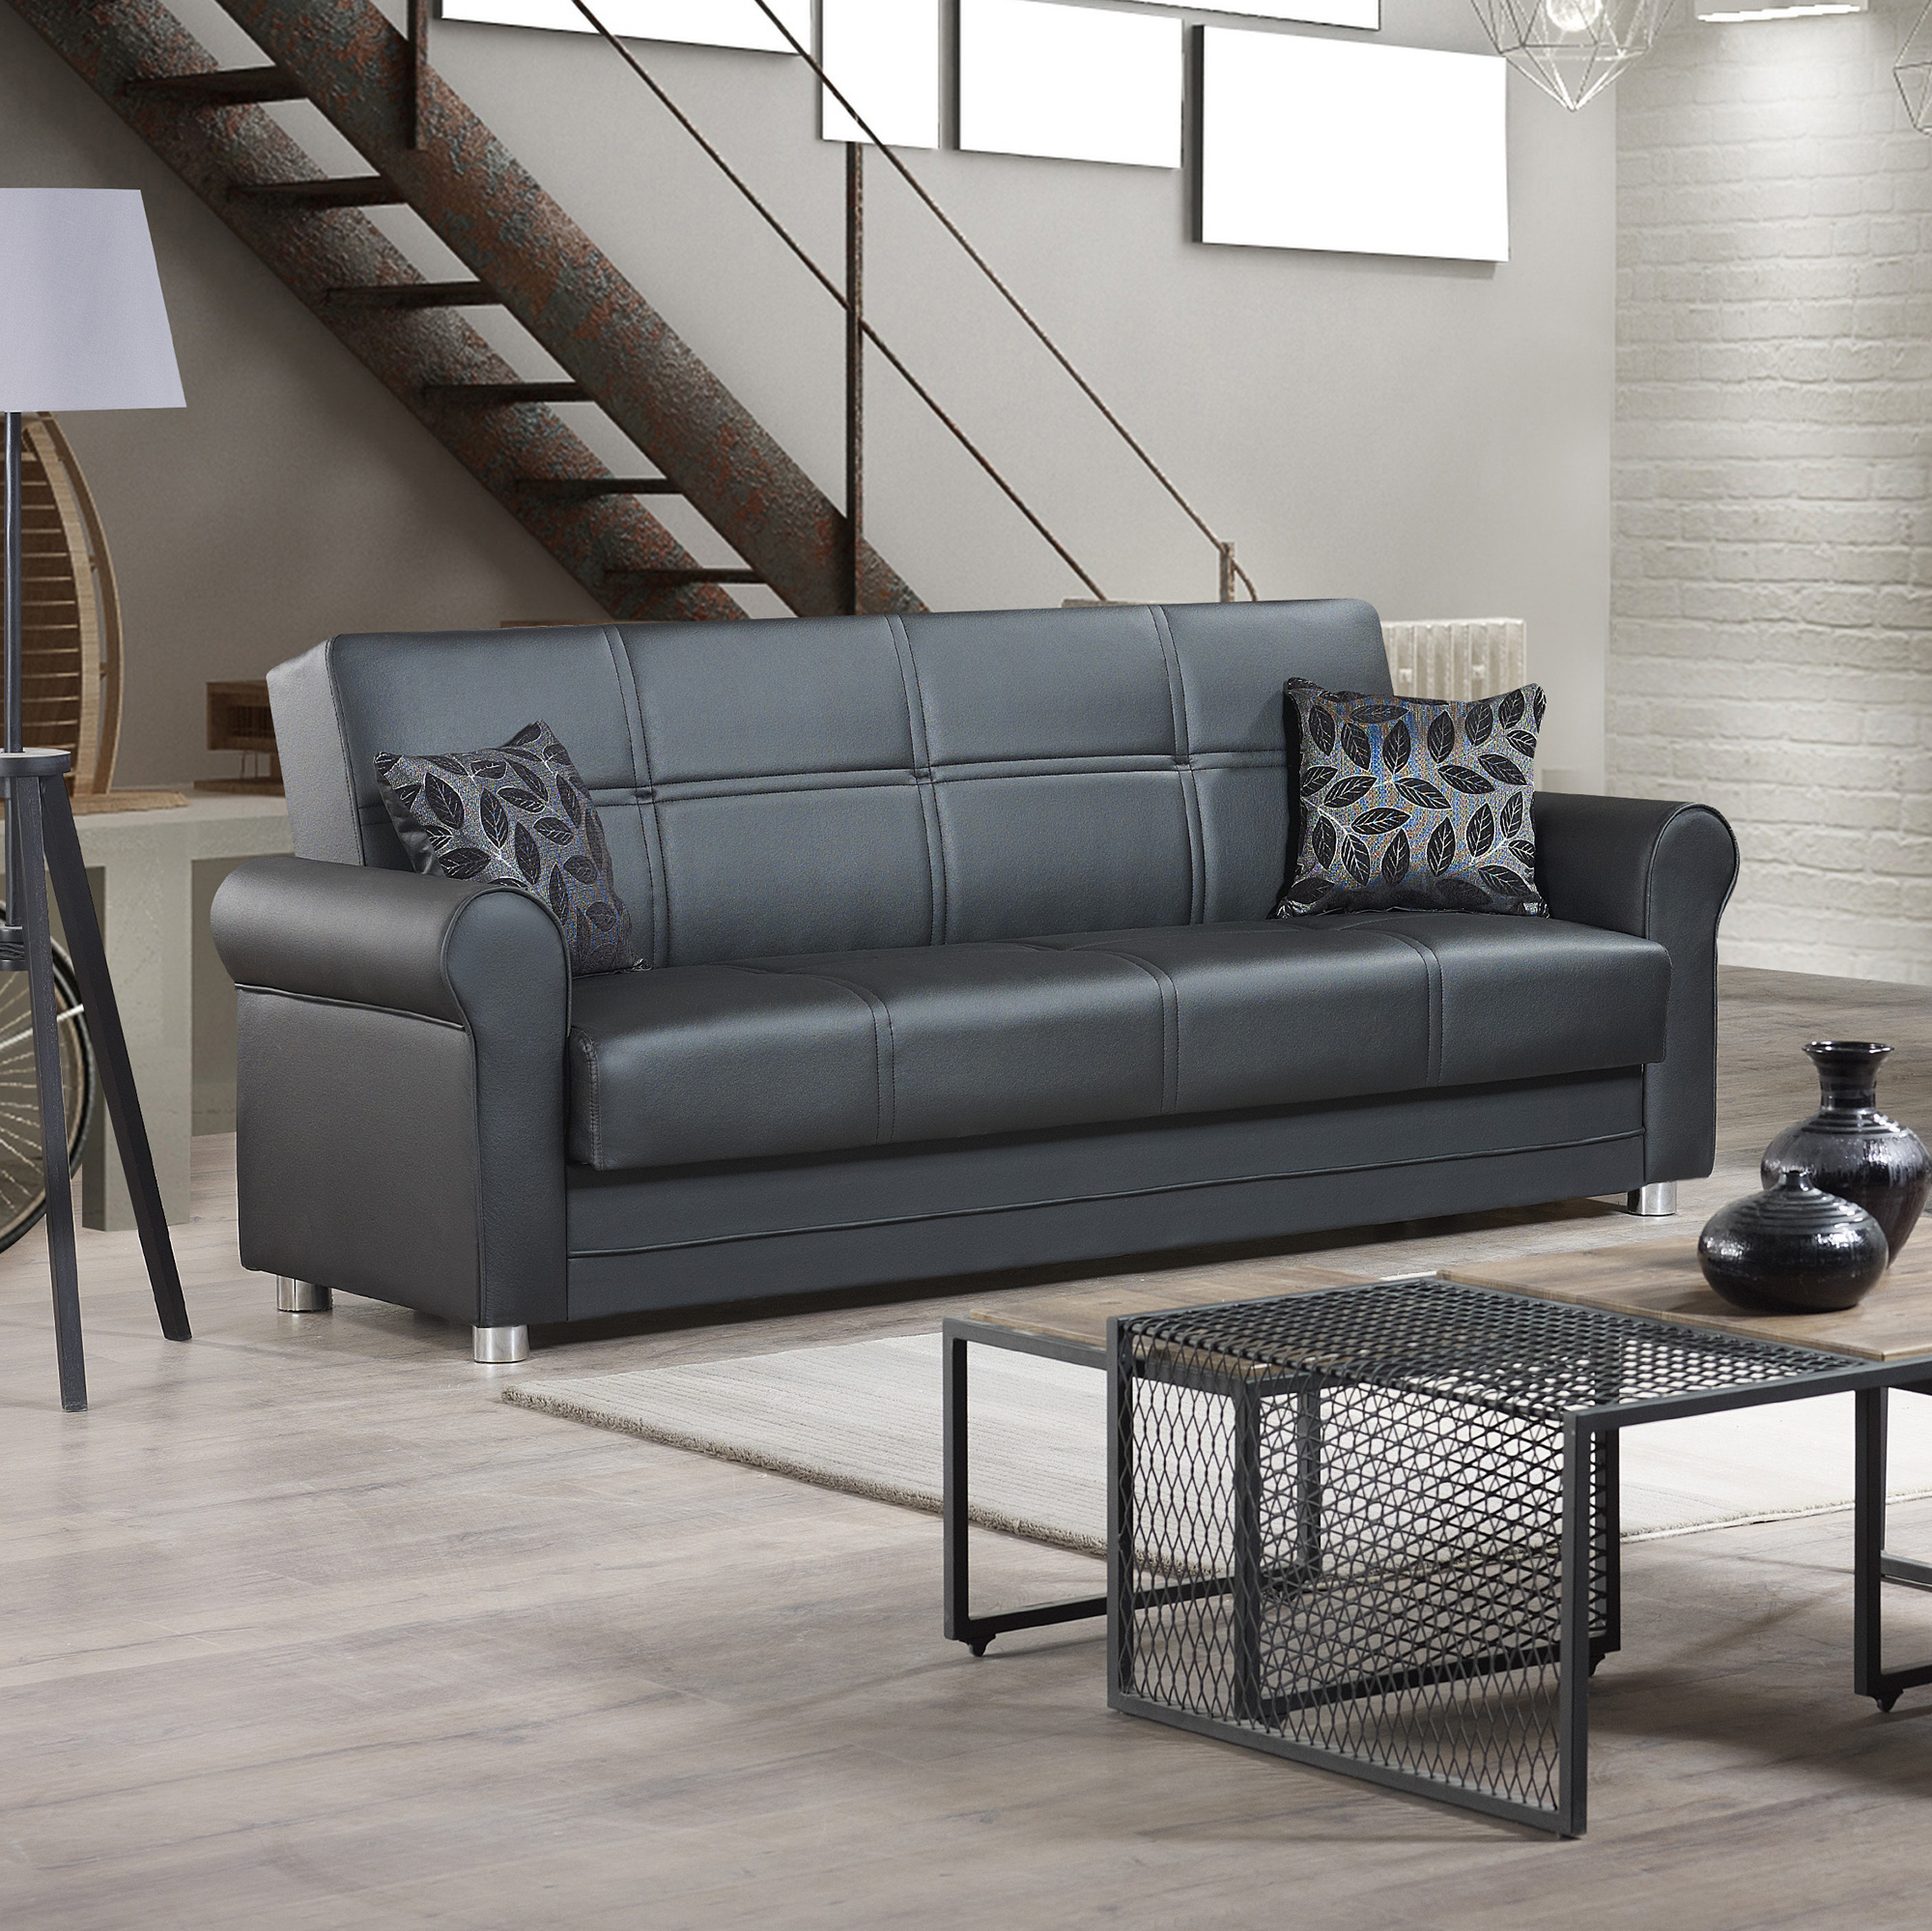 Prato Storage Sectional Futon Sofas Inside Best And Newest Ottomanson Avalon Sofa Bed With Storage In Leather (View 2 of 25)